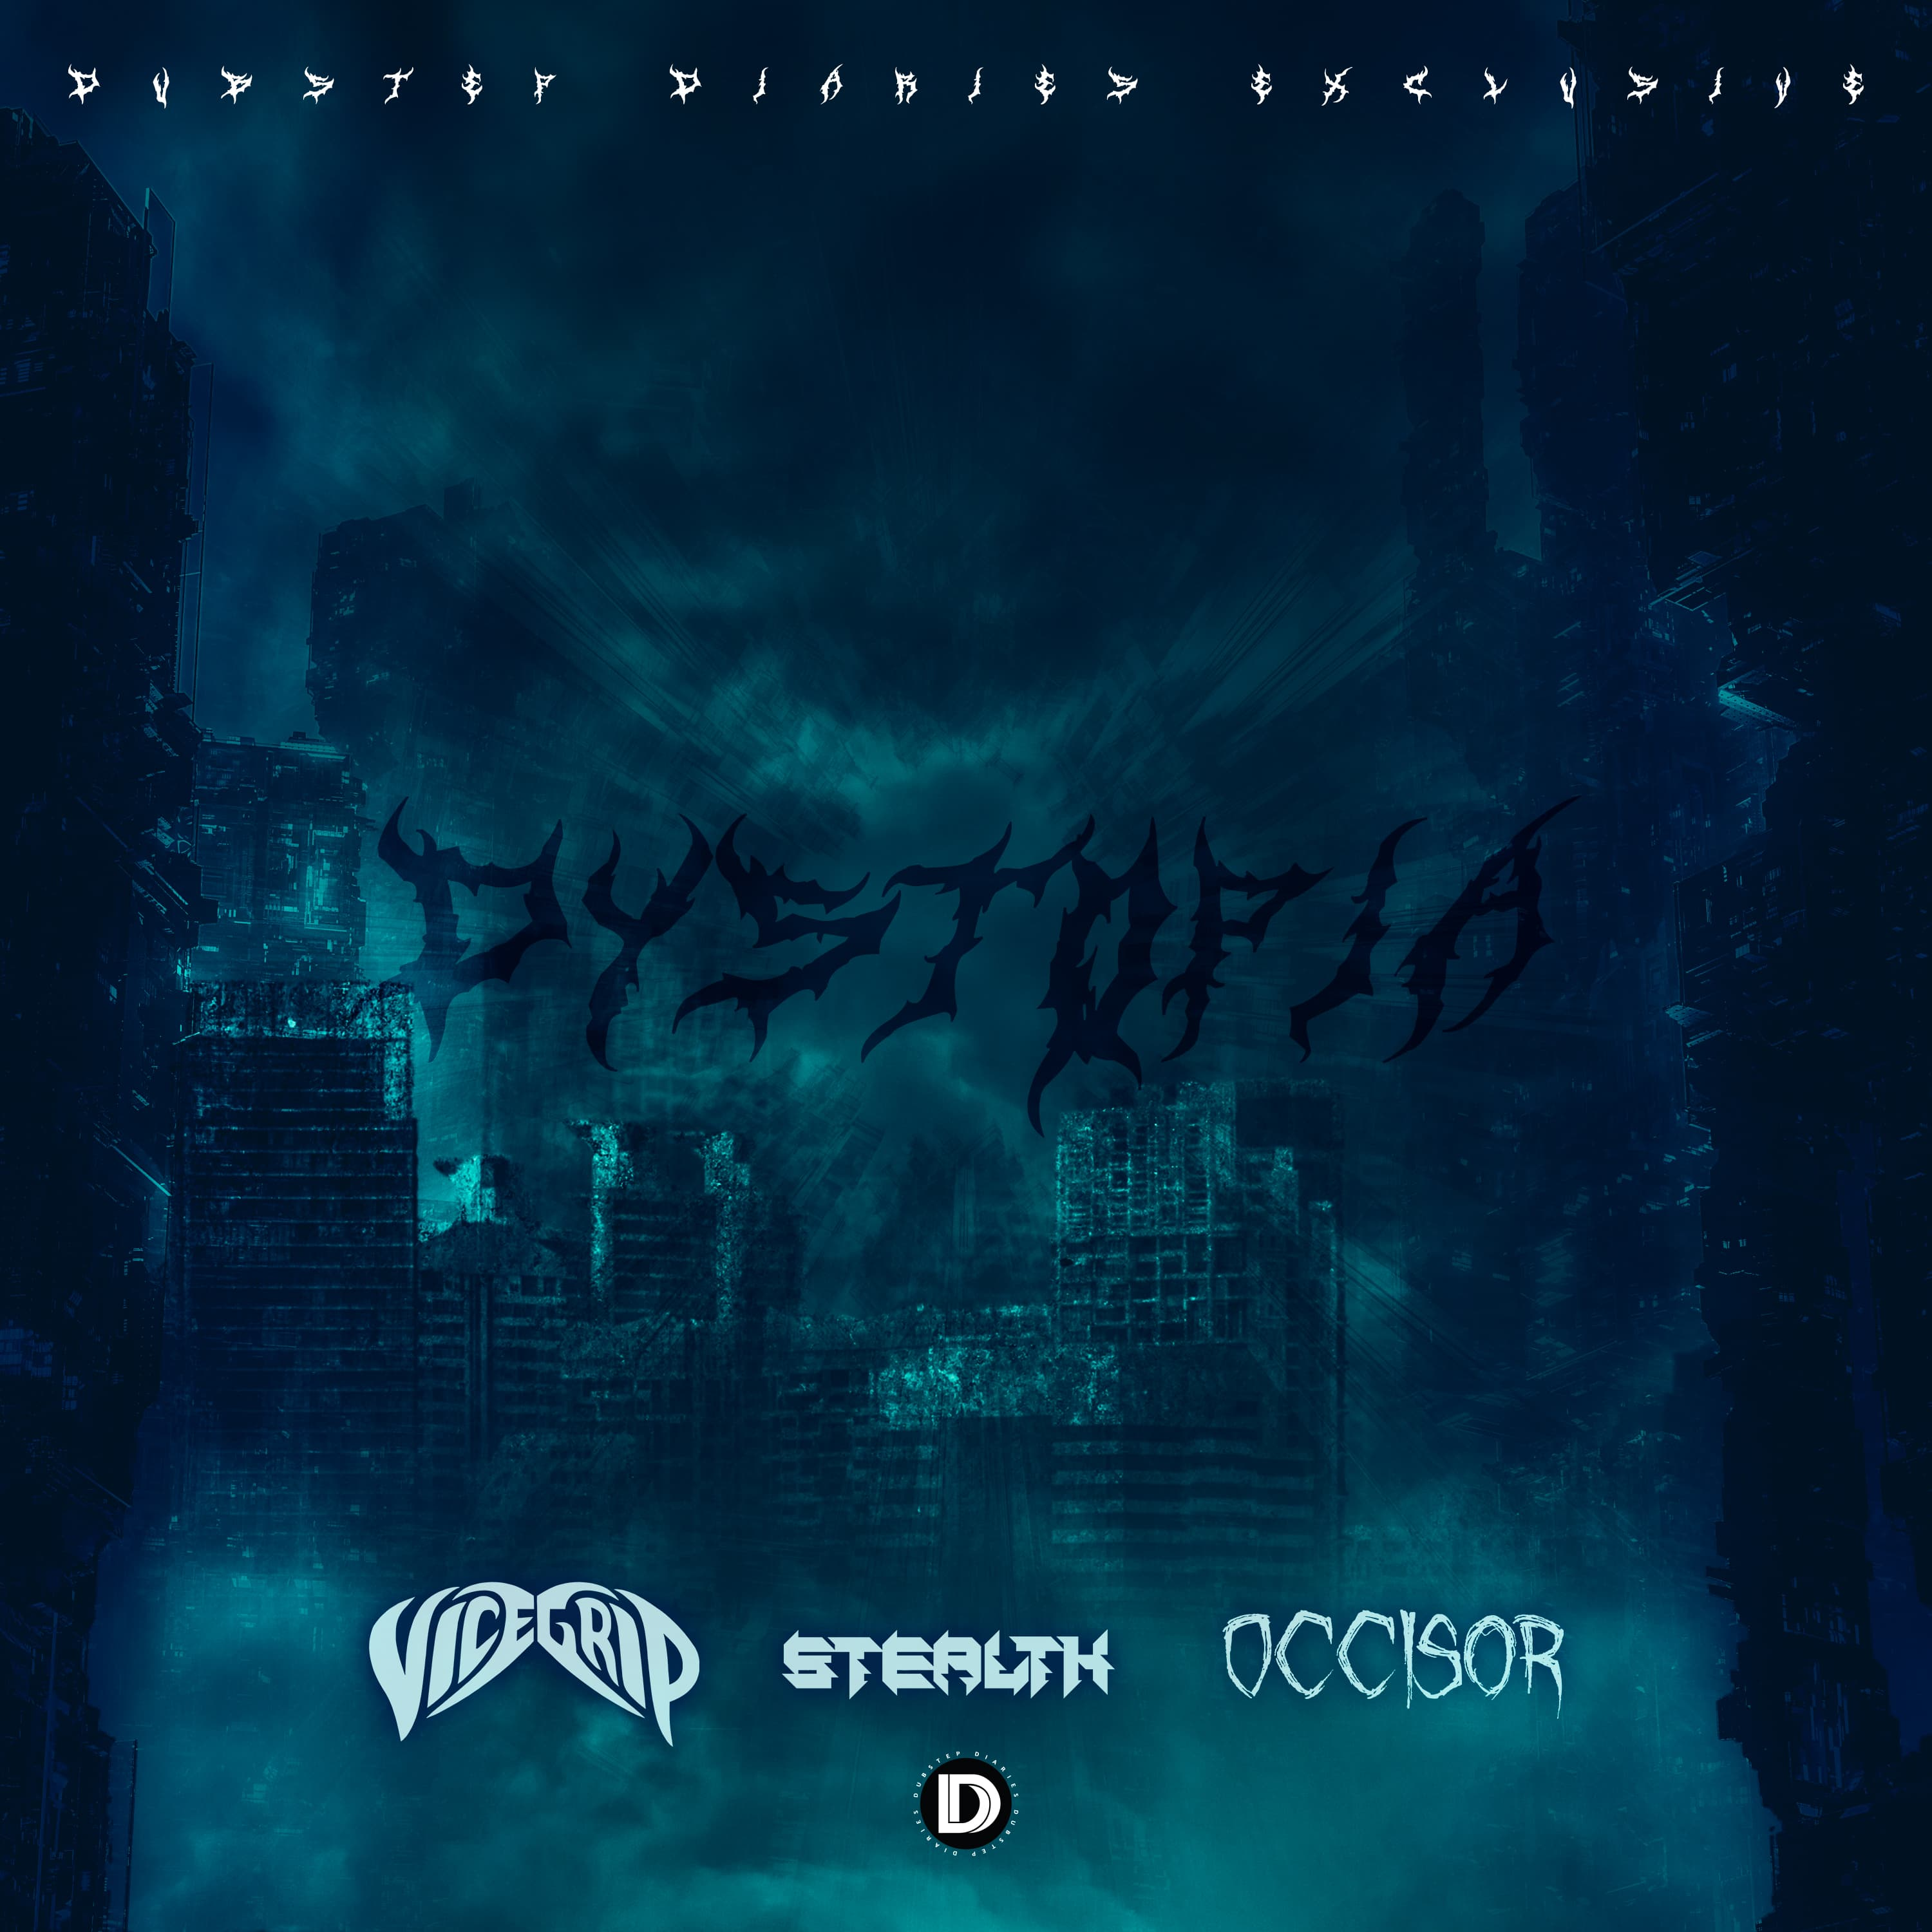 VICEGRIP x STEALTH x OCCIS0R - Dystopia [Dubstep Diaries Exclusive] Image